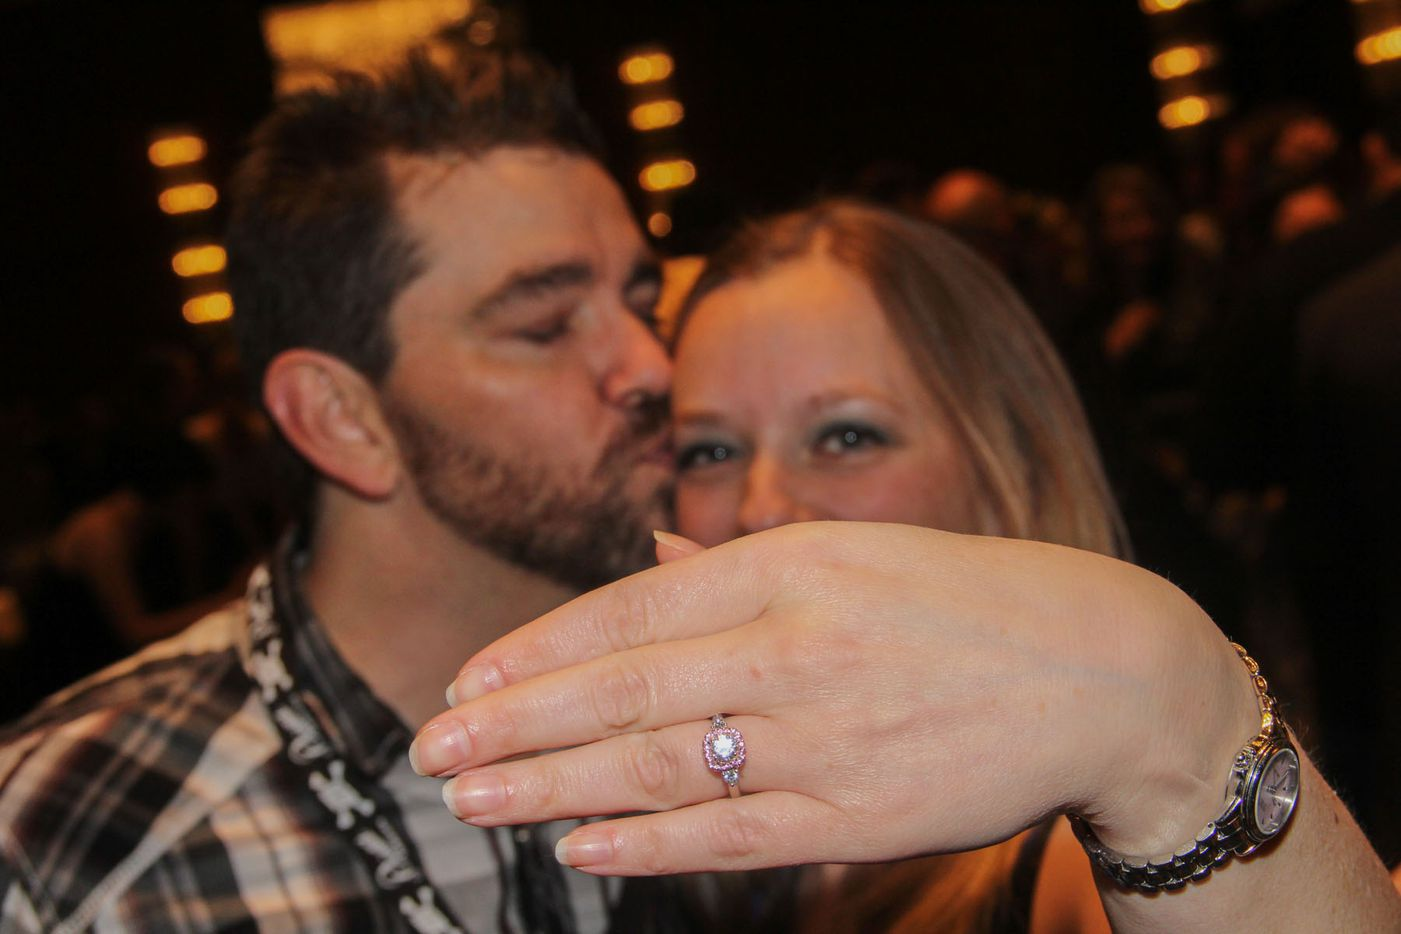 NTX Beer Week held its Second Annual Brewers Ball at the Renaissance Dallas Hotel on November 13, 2015. Christopher Barry proposed to his girlfriend Jennifer Brantley at the Brewers Ball.